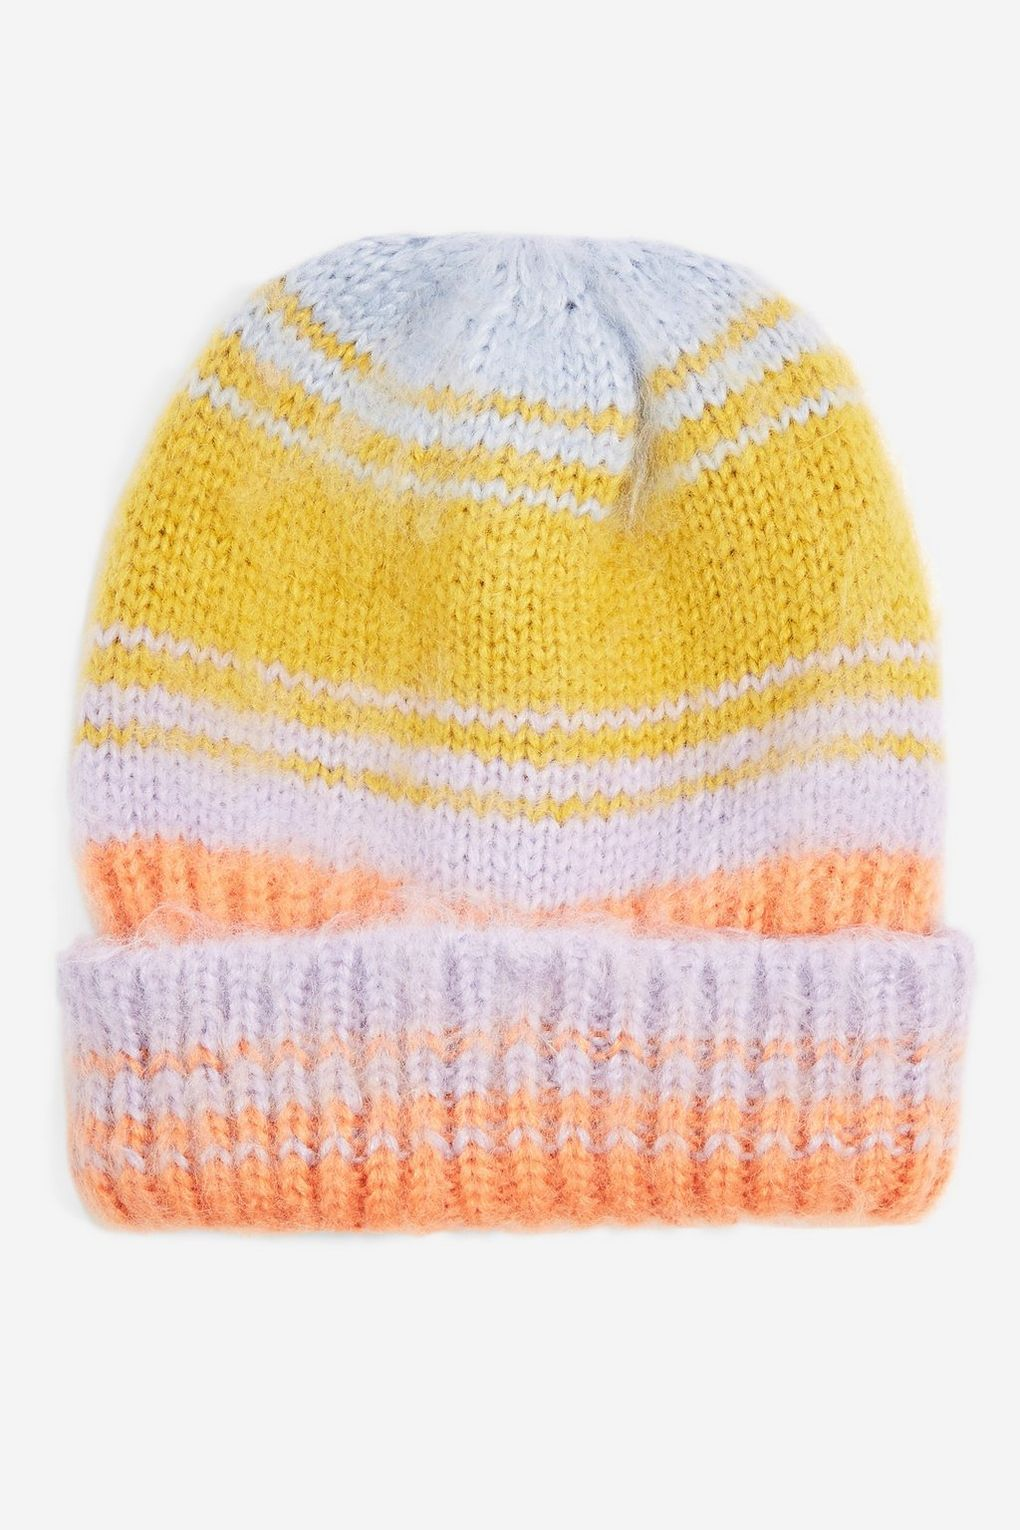 Cute Winter Hats For Women 2019 All Hat Types 81f80c61cf